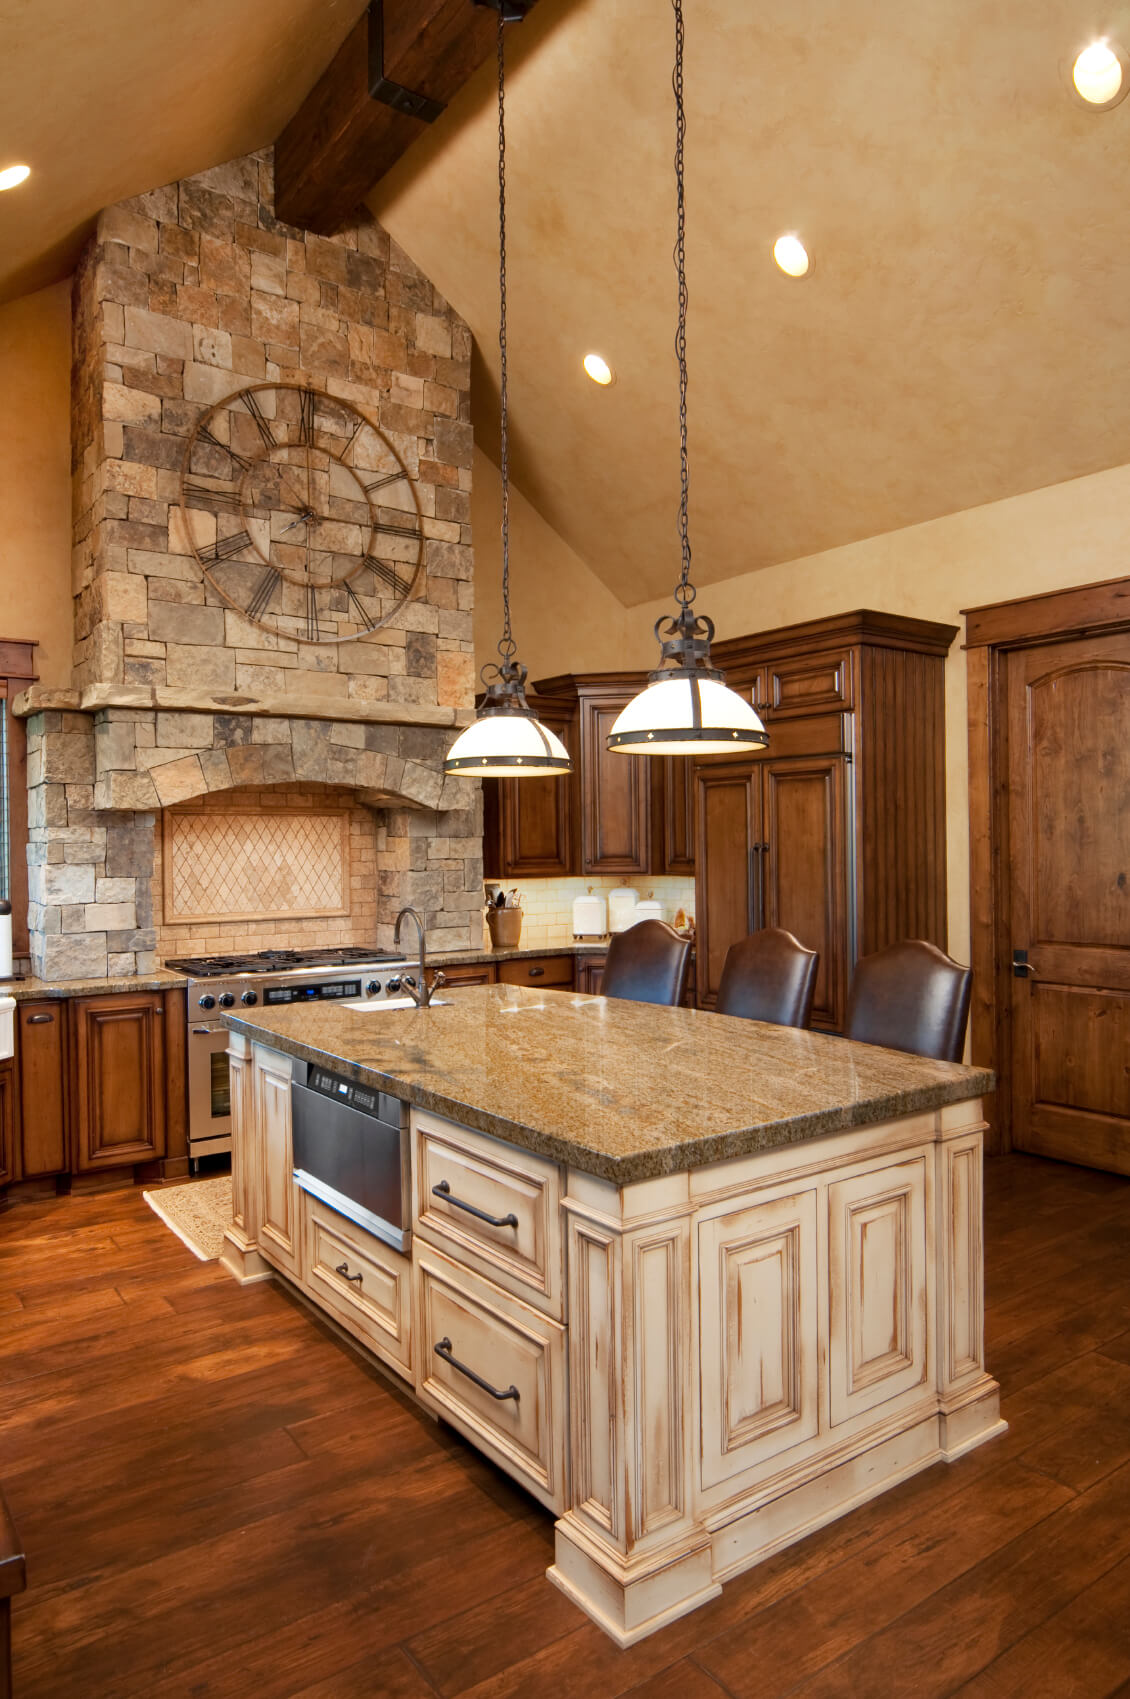 Rich, natural wood kitchen holds this large, contrasting light wood island at center, with built-in dishwasher, storage, and sink, across from dining seating.